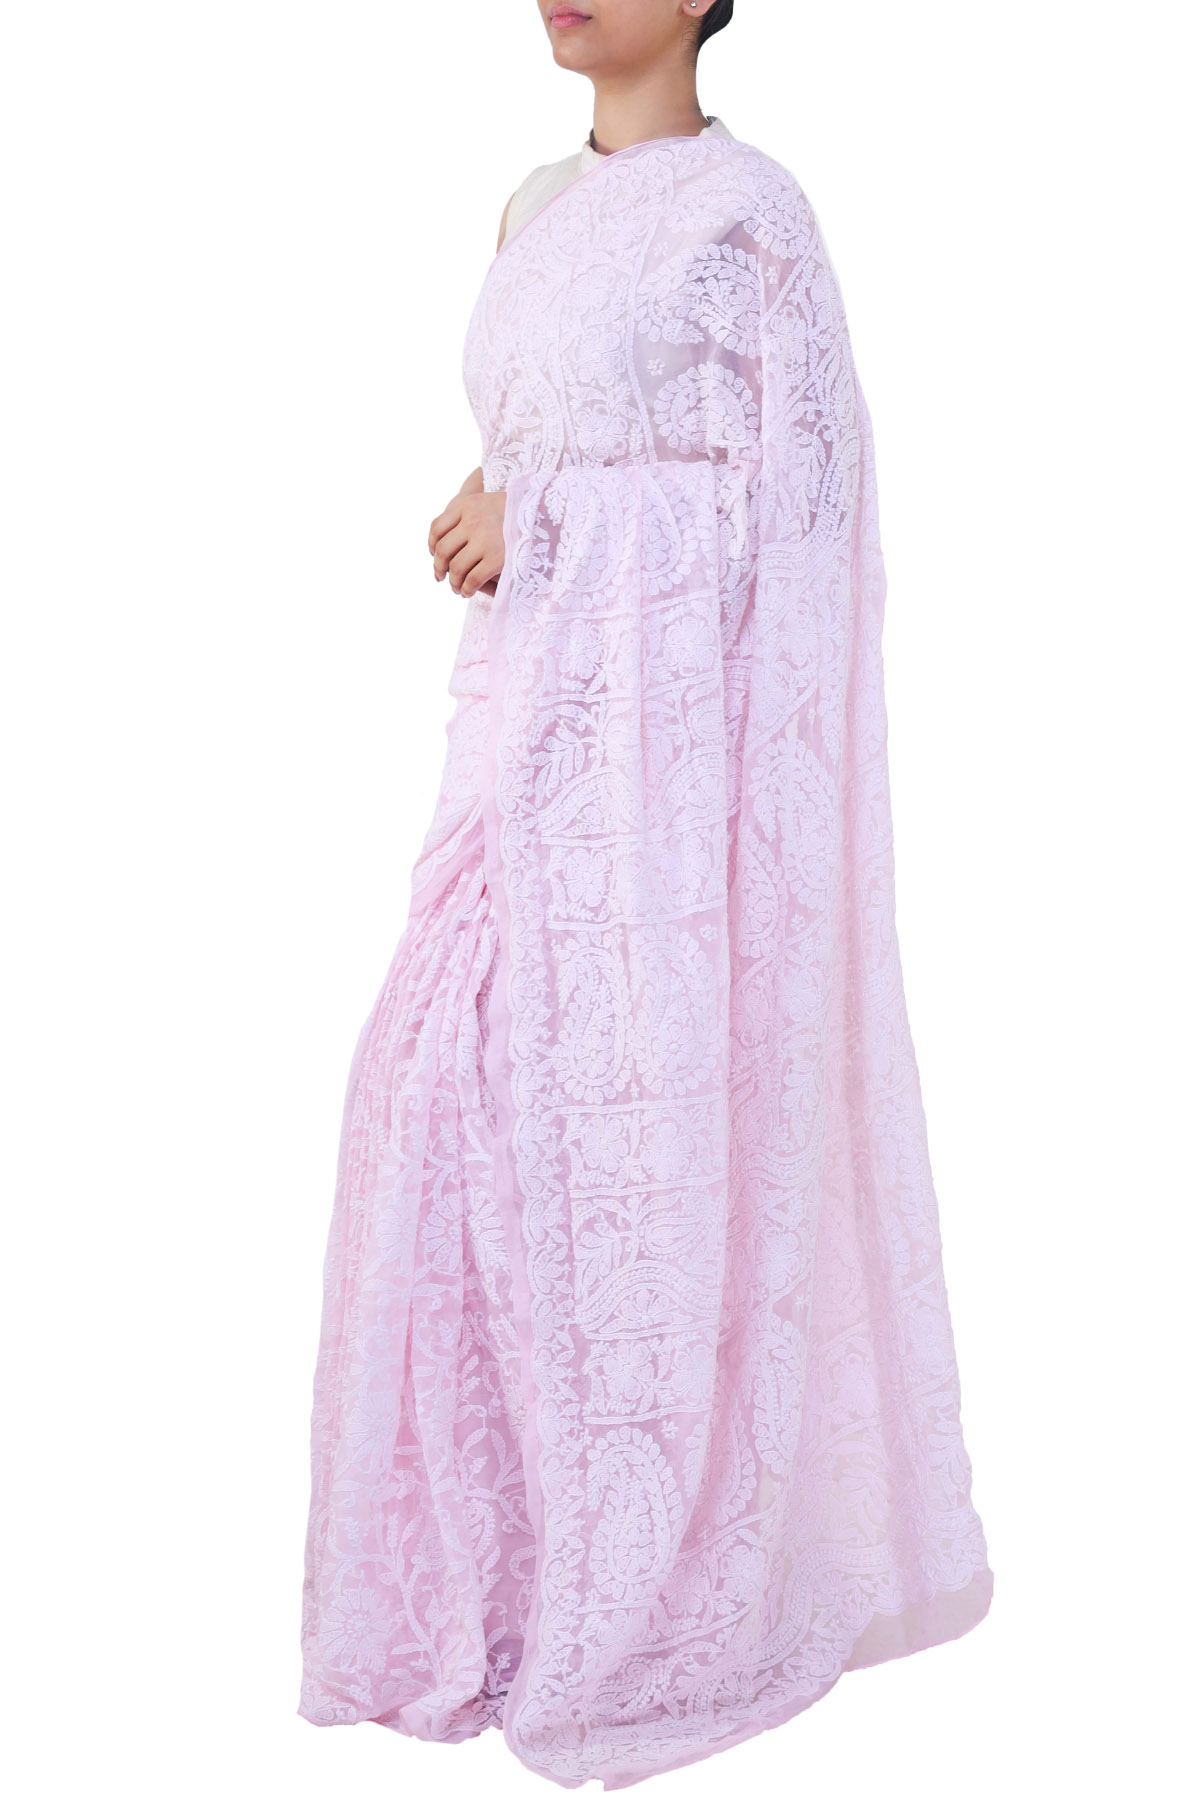 Baby Pink Color Allover Hand Embroidered Lucknowi Chikankari Saree (With Blouse - Georgette) SM250678